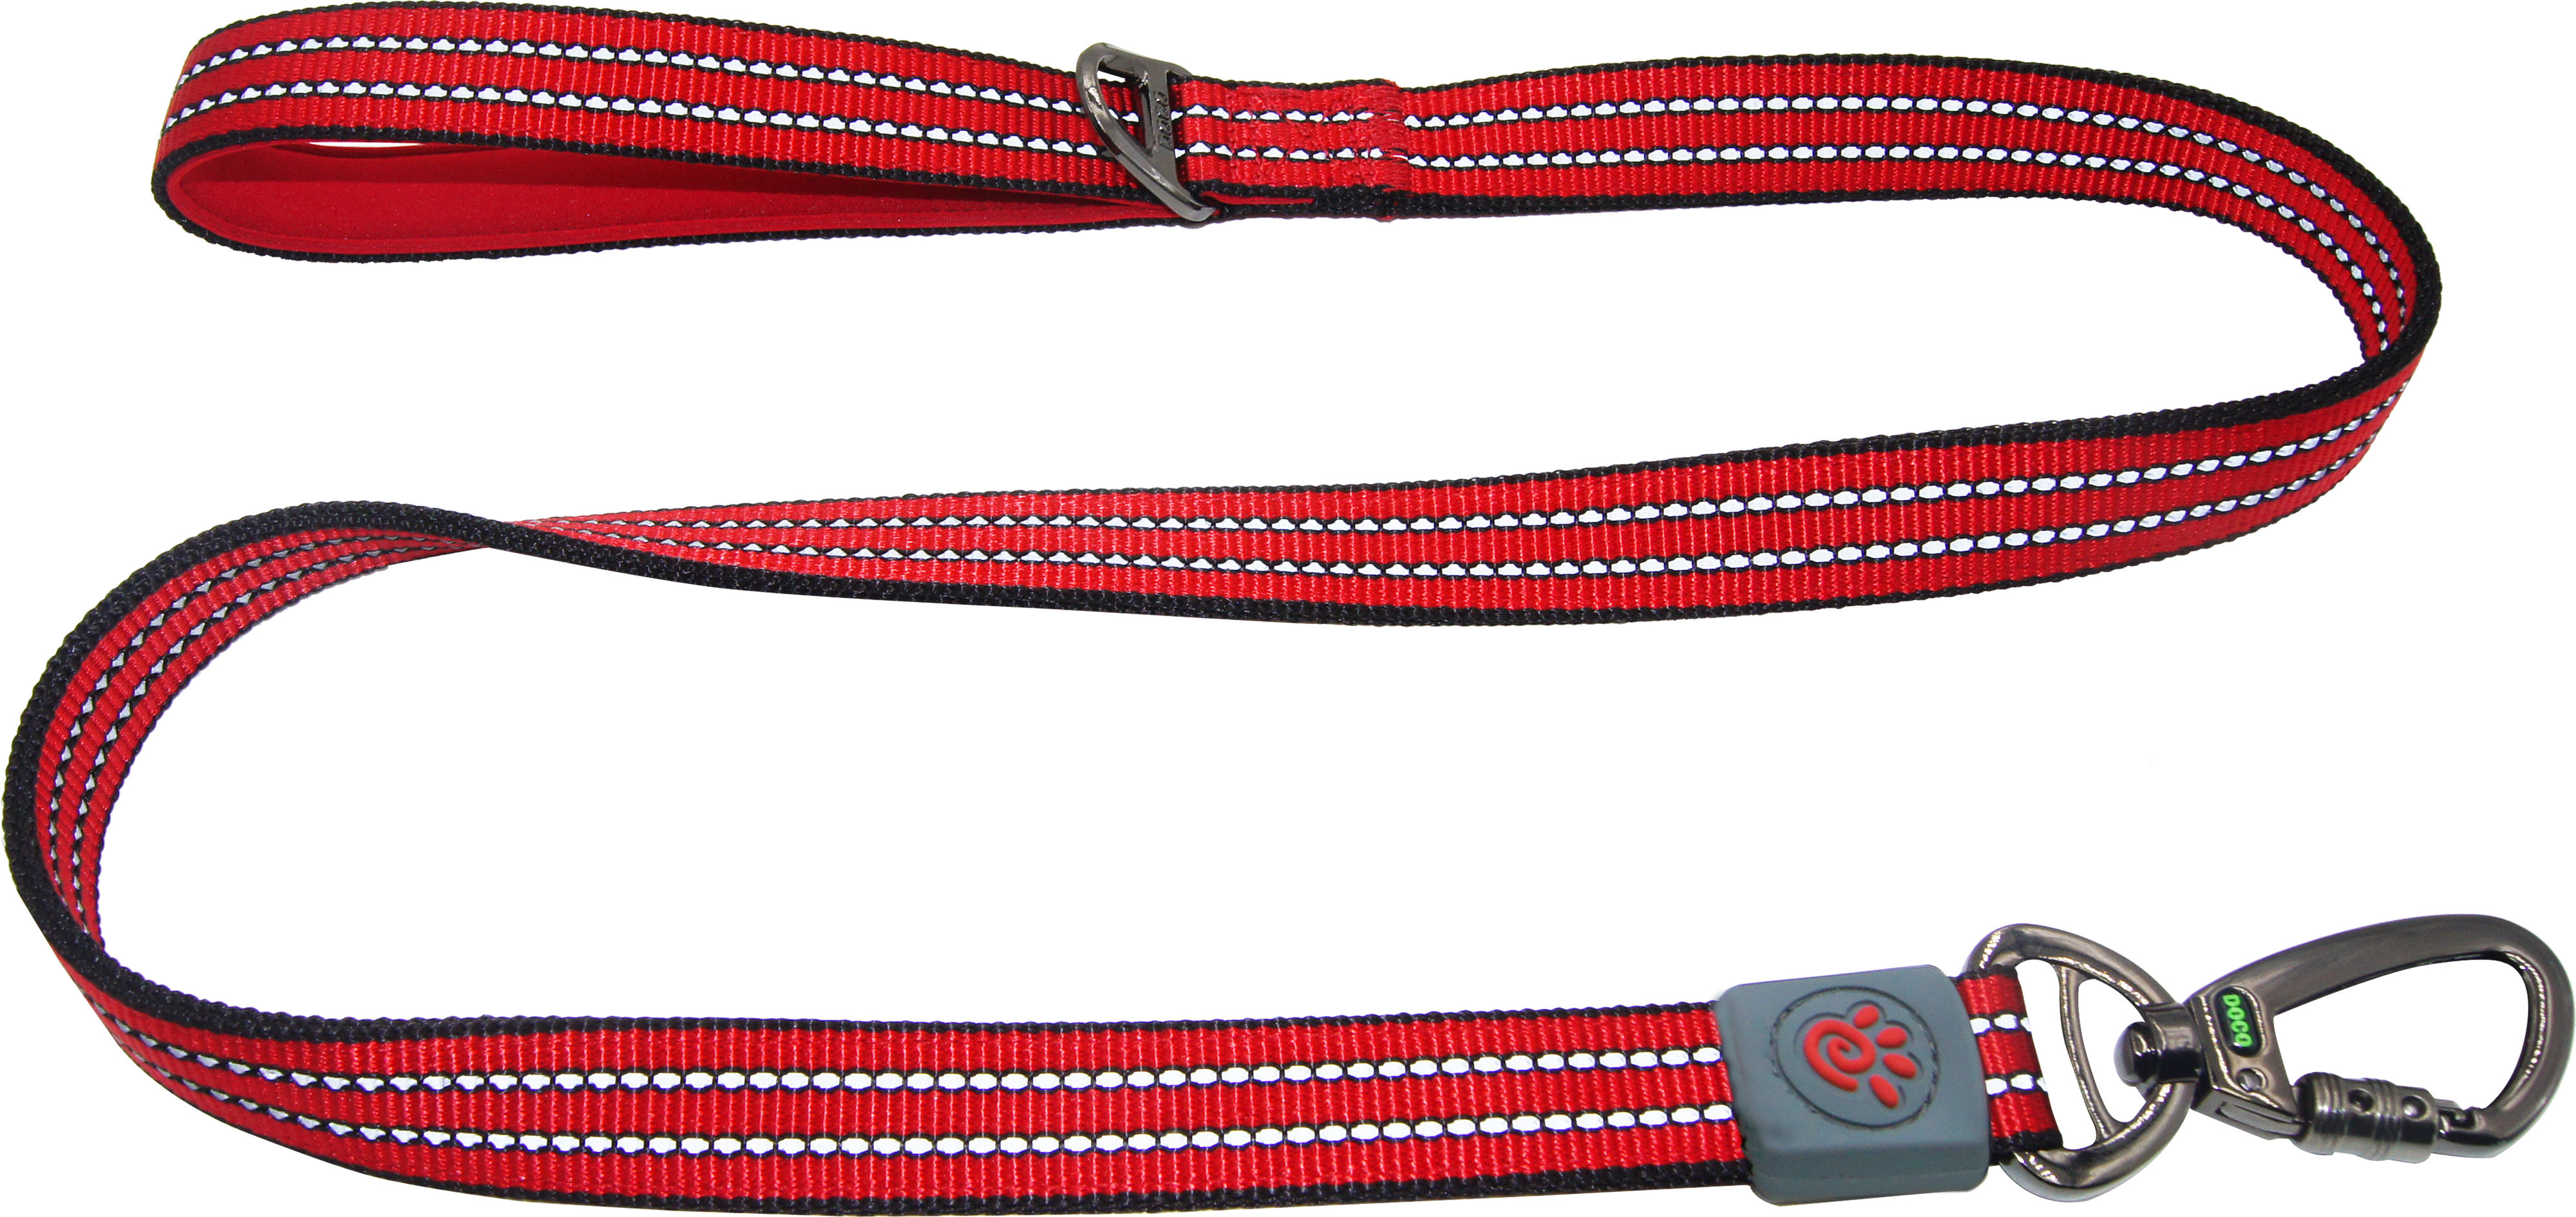 DOCO® VARIO Leash with Reflective Thread 6ft - www.docopet.com